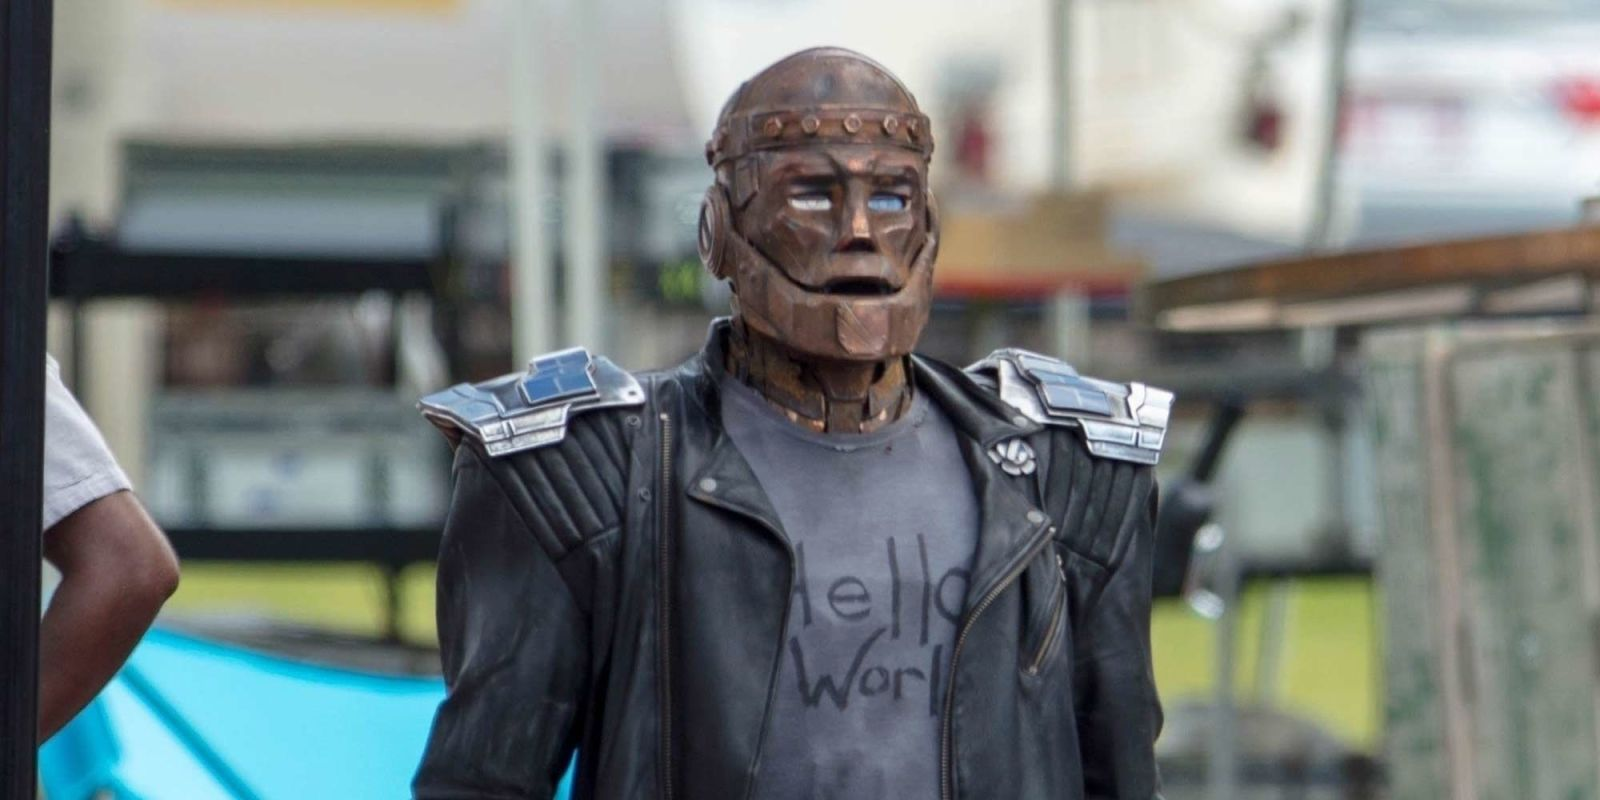 Doom Patrol's Robotman is revealed in new set pictures from DC Universe series